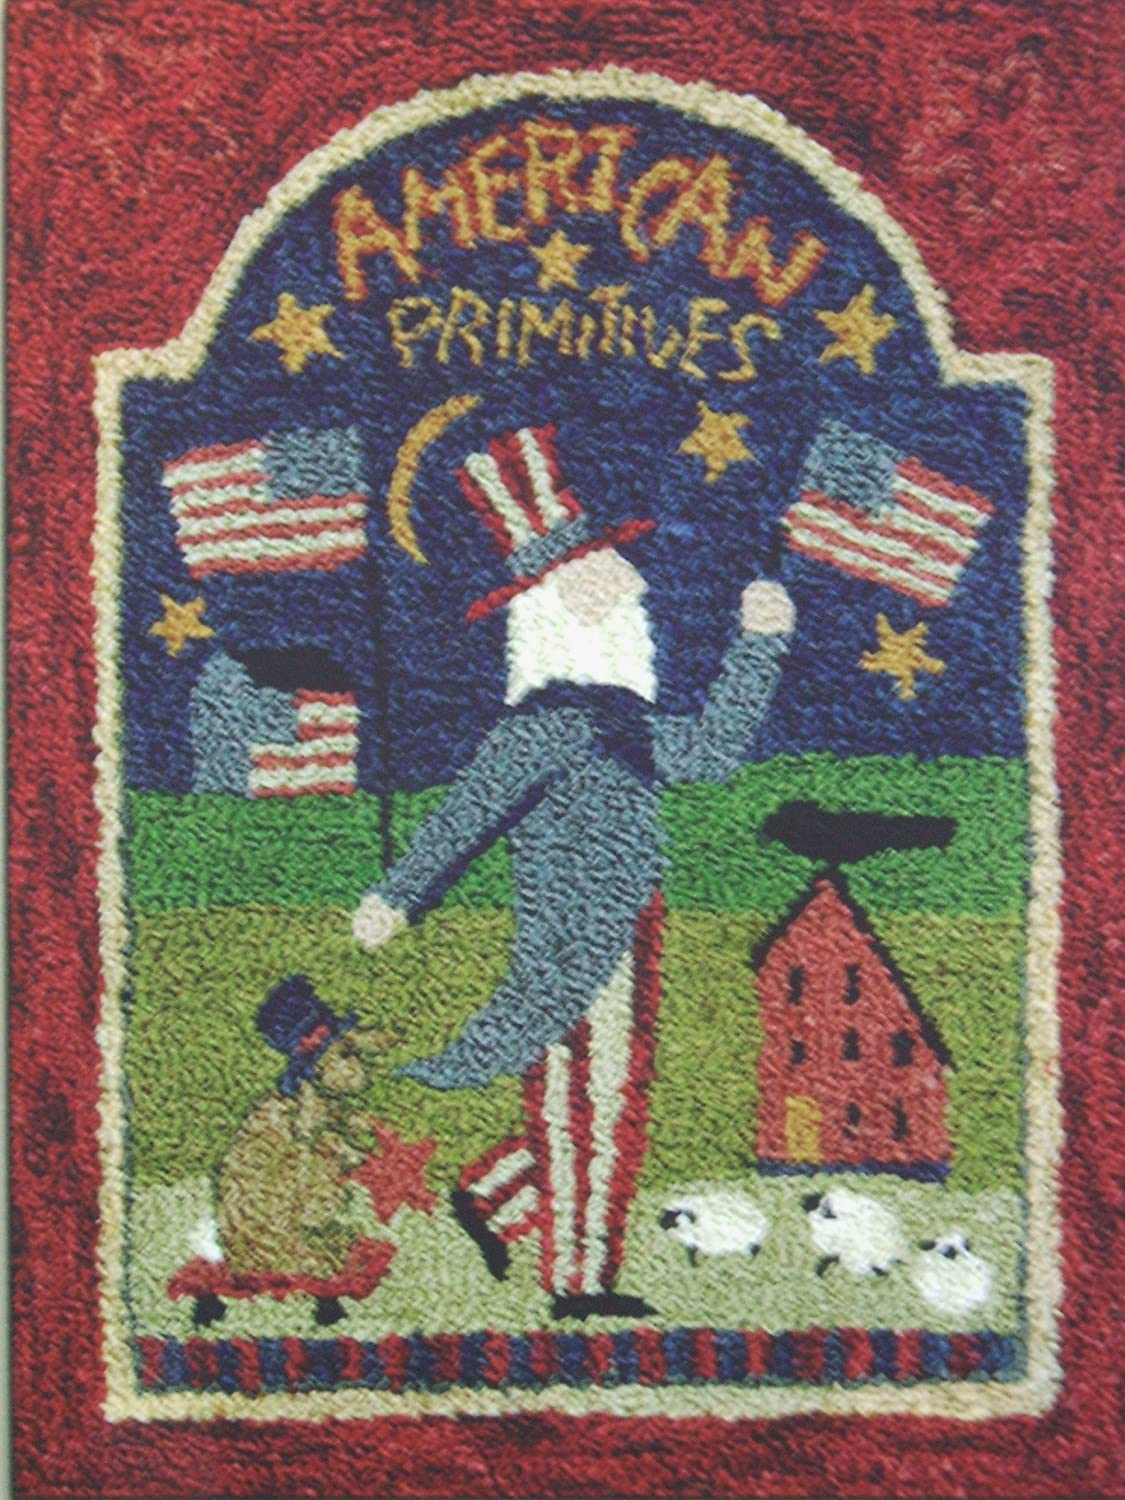 American Primitives PN341 Uncle Sam Flag Punchneedle Punch Needle Embroidery Teresa Kogut Pattern